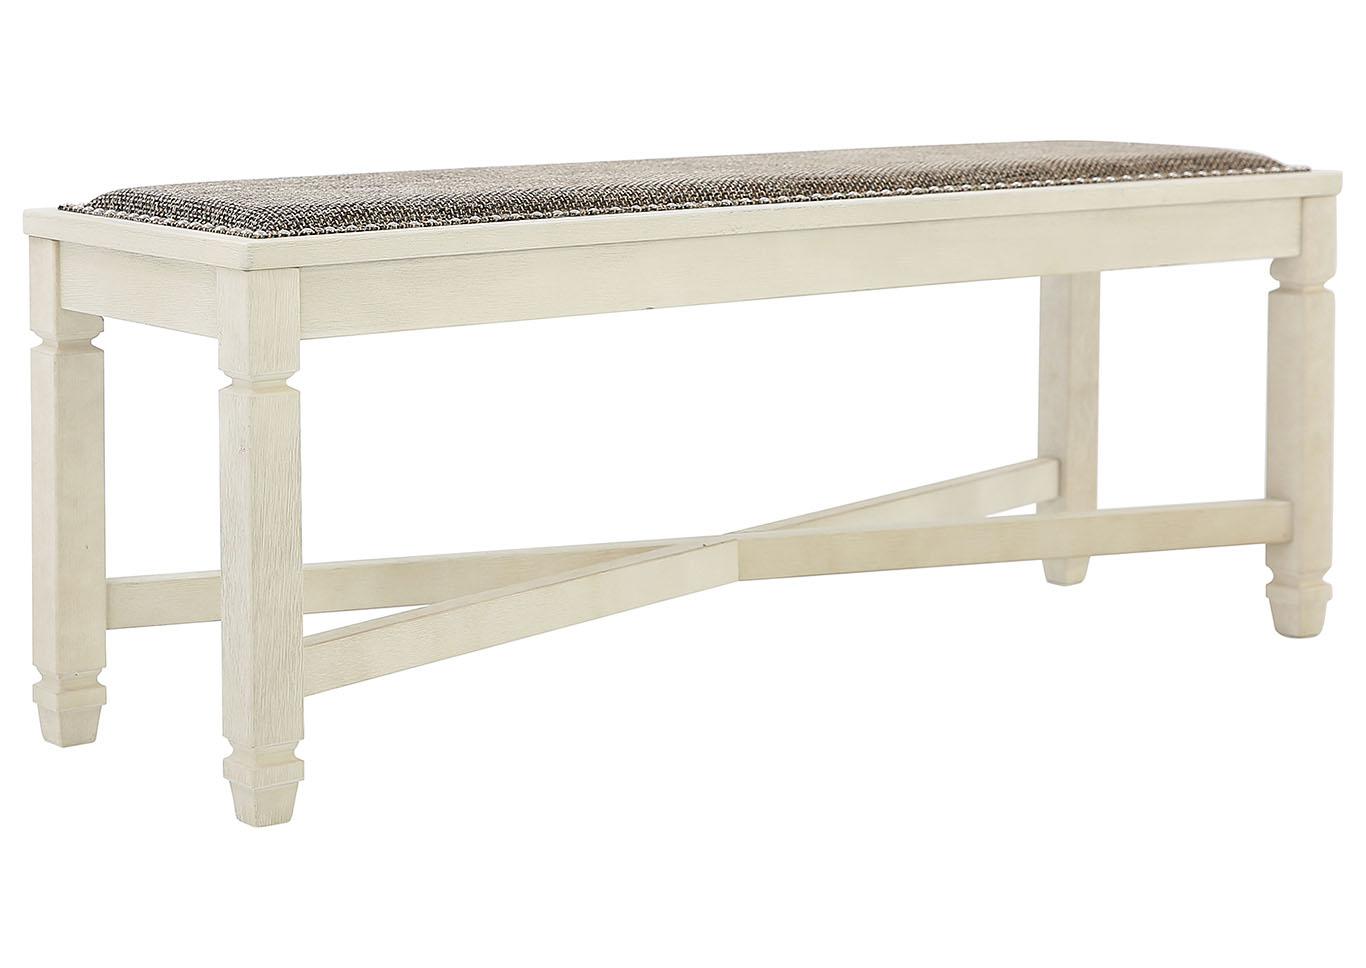 BOLANBURG DINING ROOM BENCH,ASHLEY FURNITURE INC.